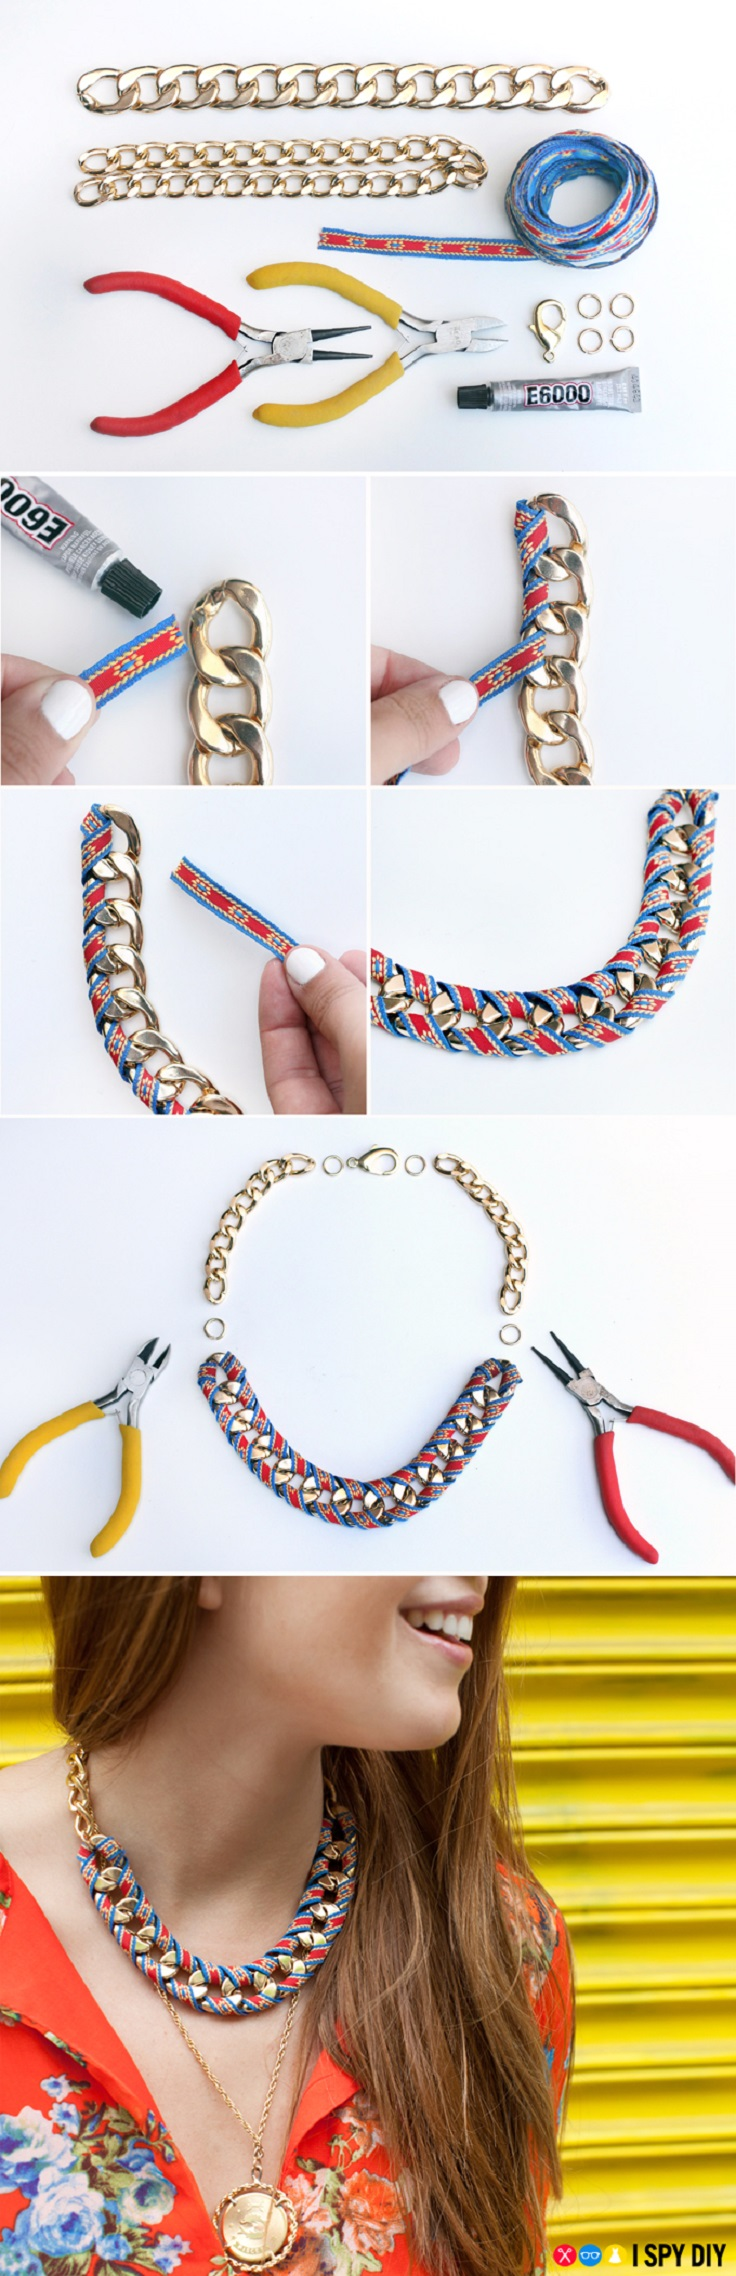 Ribbon-Wrapped-Chain-Necklace